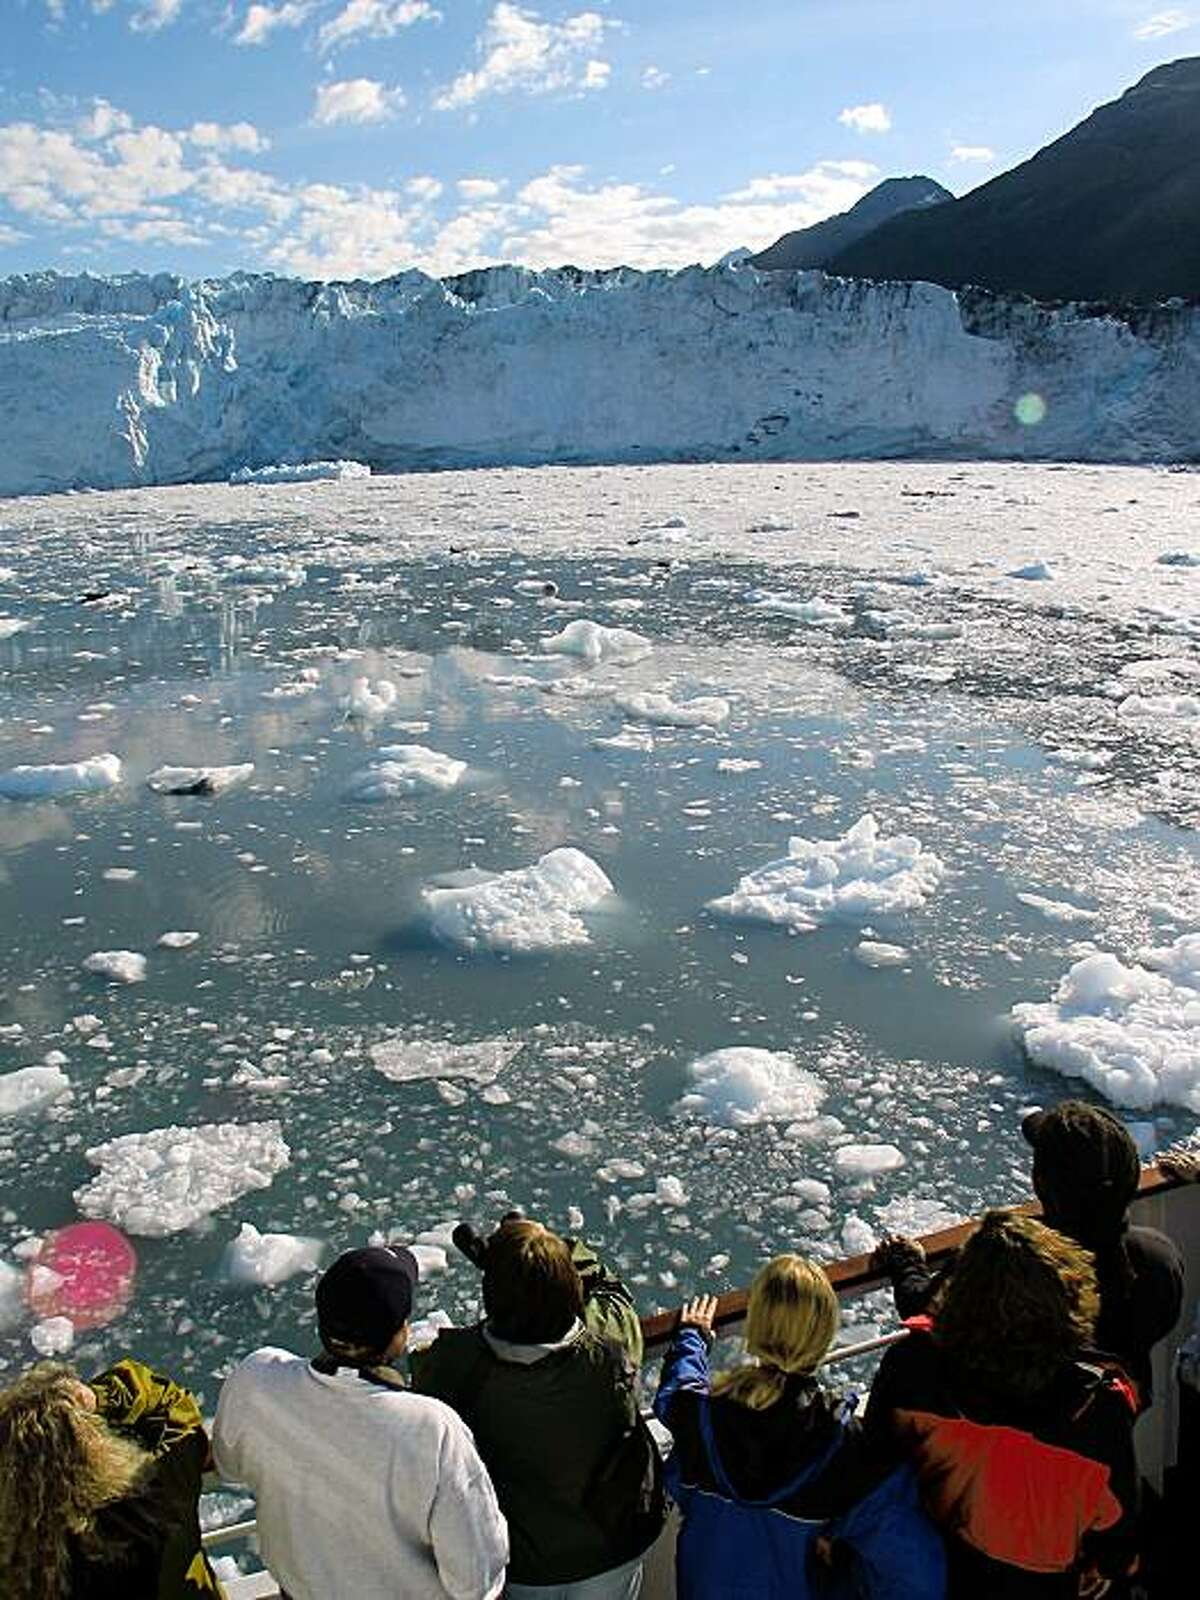 TRAVEL ALASKA GLACIERS -- Passengers aboard Spirit of Columbia admire the Harvard Glacier at the end of the icy College Fjord during a small-ship cruise of Prince William Sound in Alaska. Spud Hilton / The Chronicle travel_alaska228.jpg